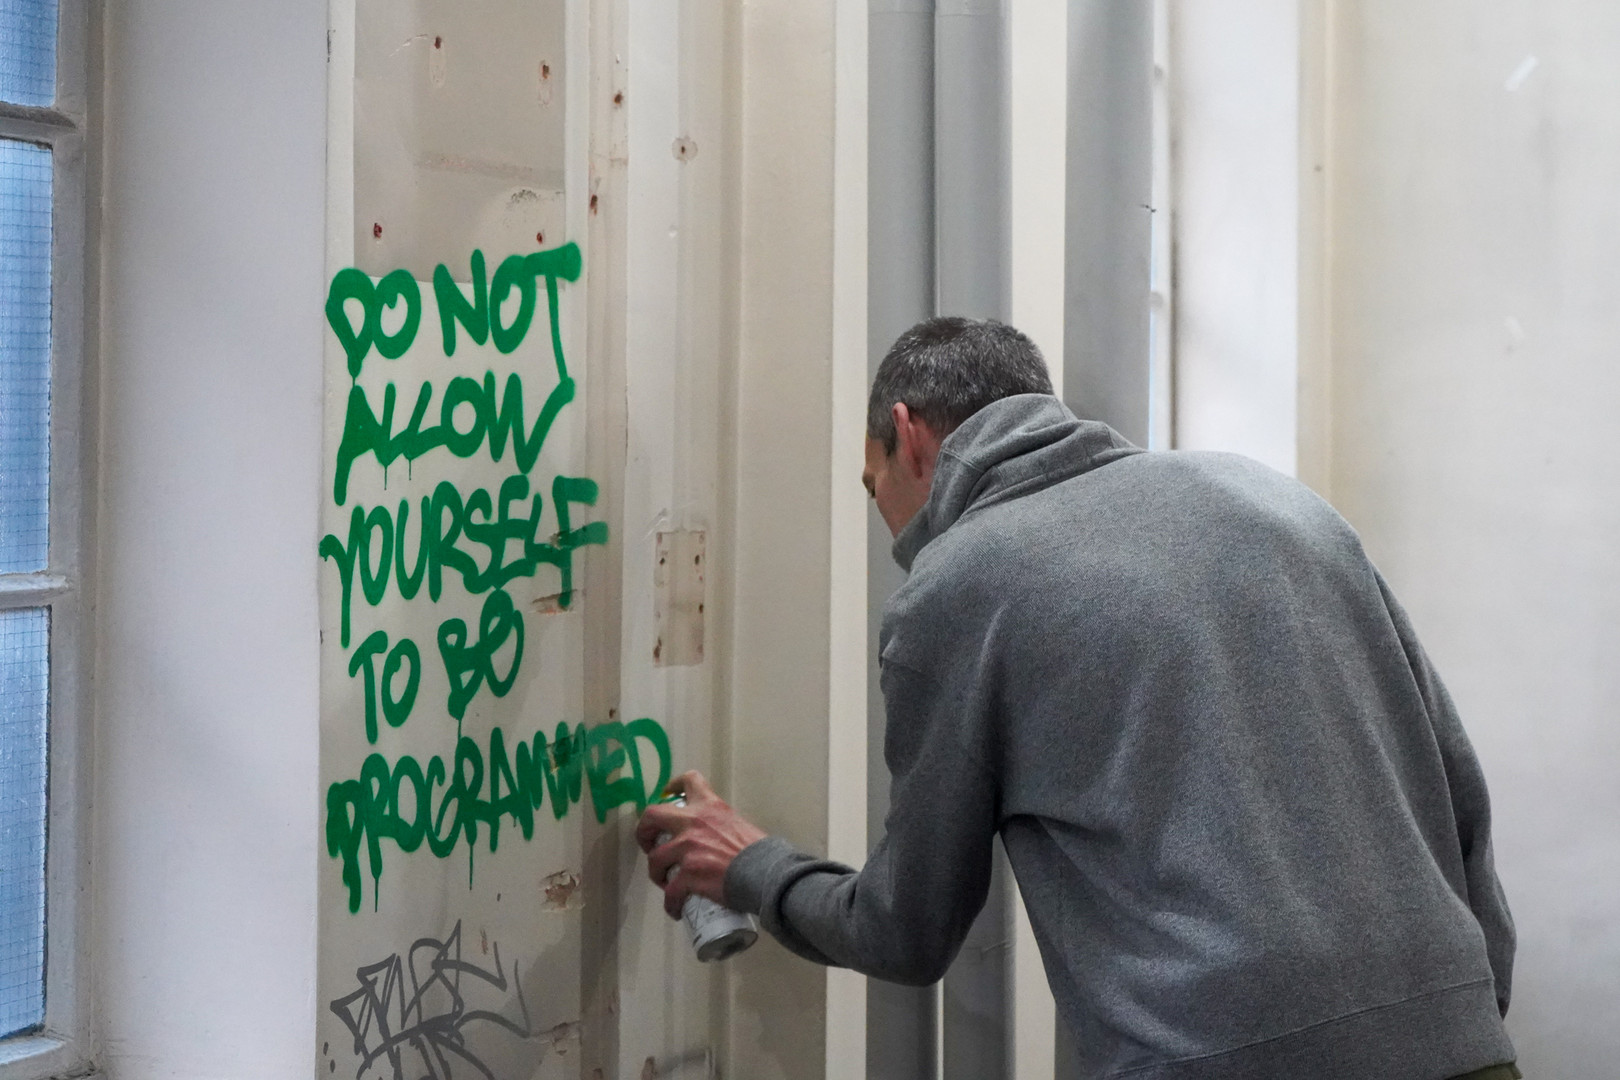 A visitor gets involved with some unplanned participatory graffiti